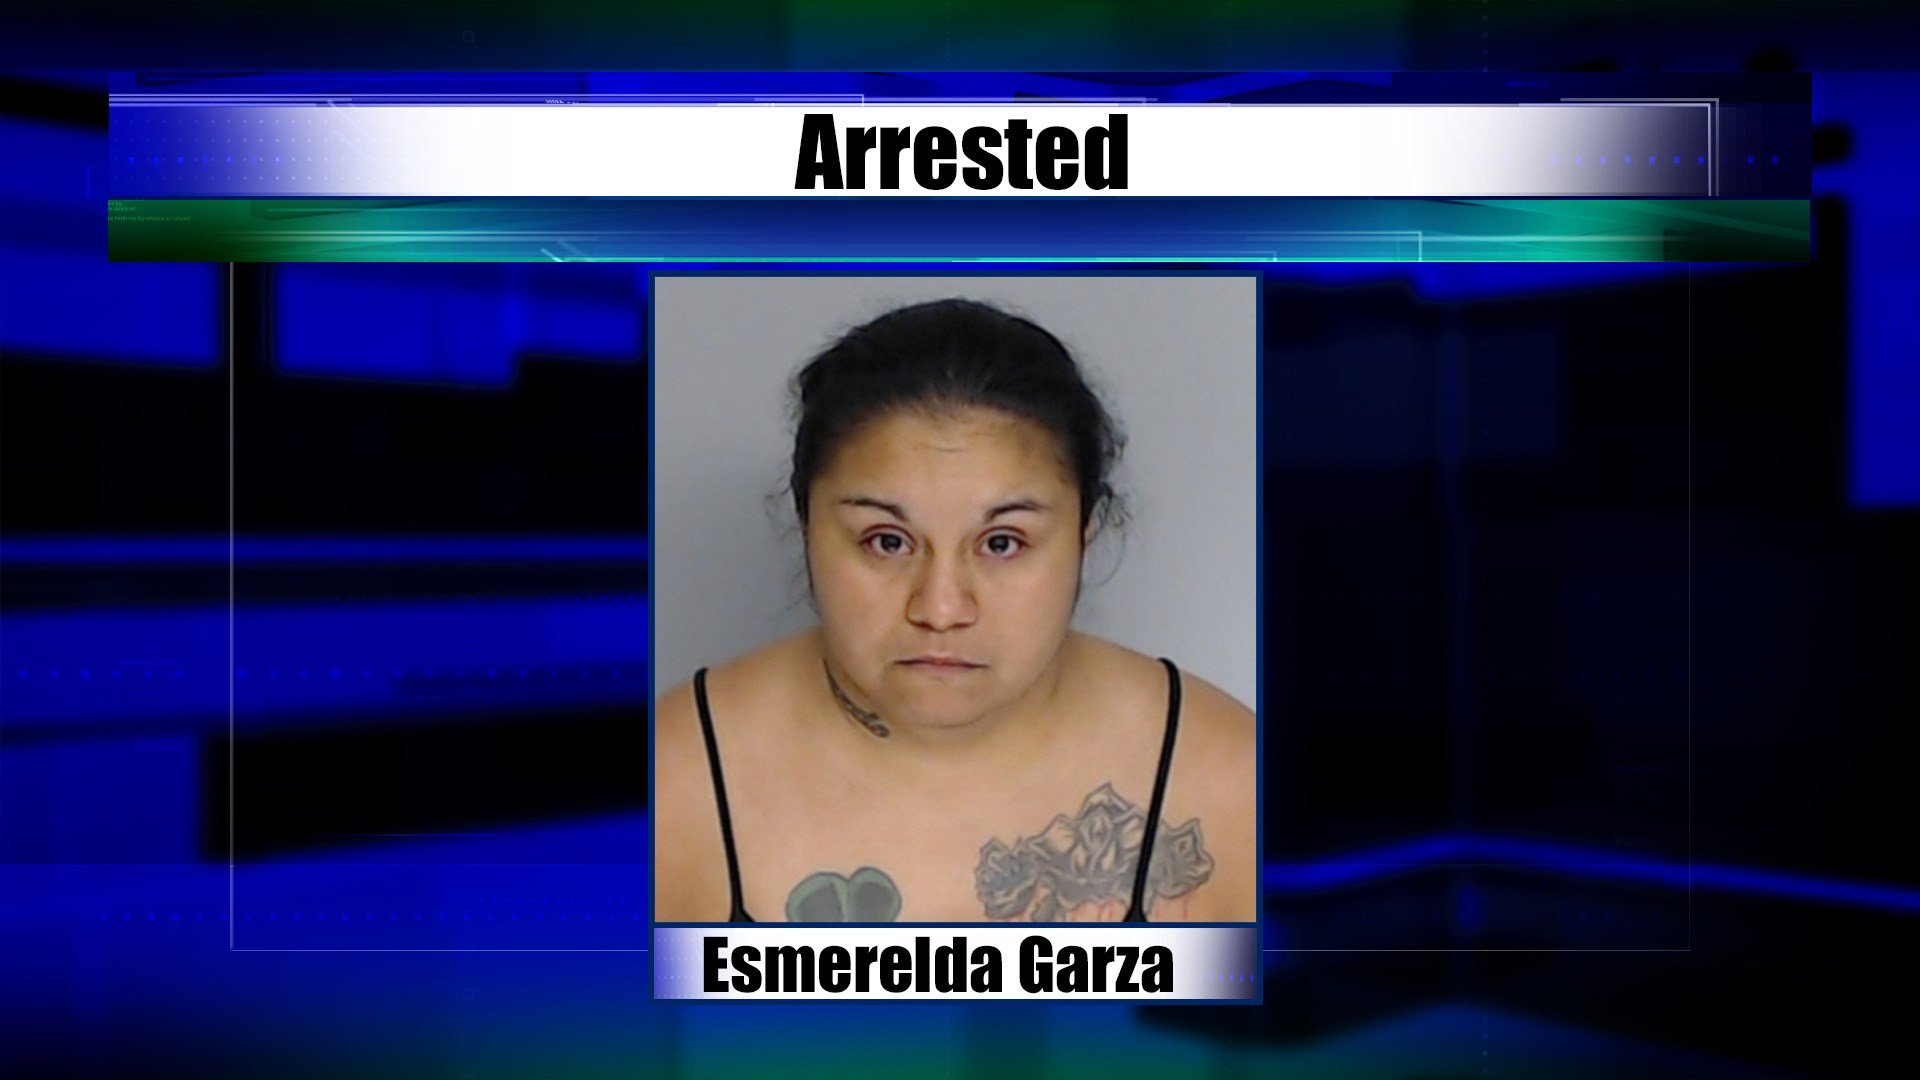 Mom arrested on suspicion of selling her 7-year-old son